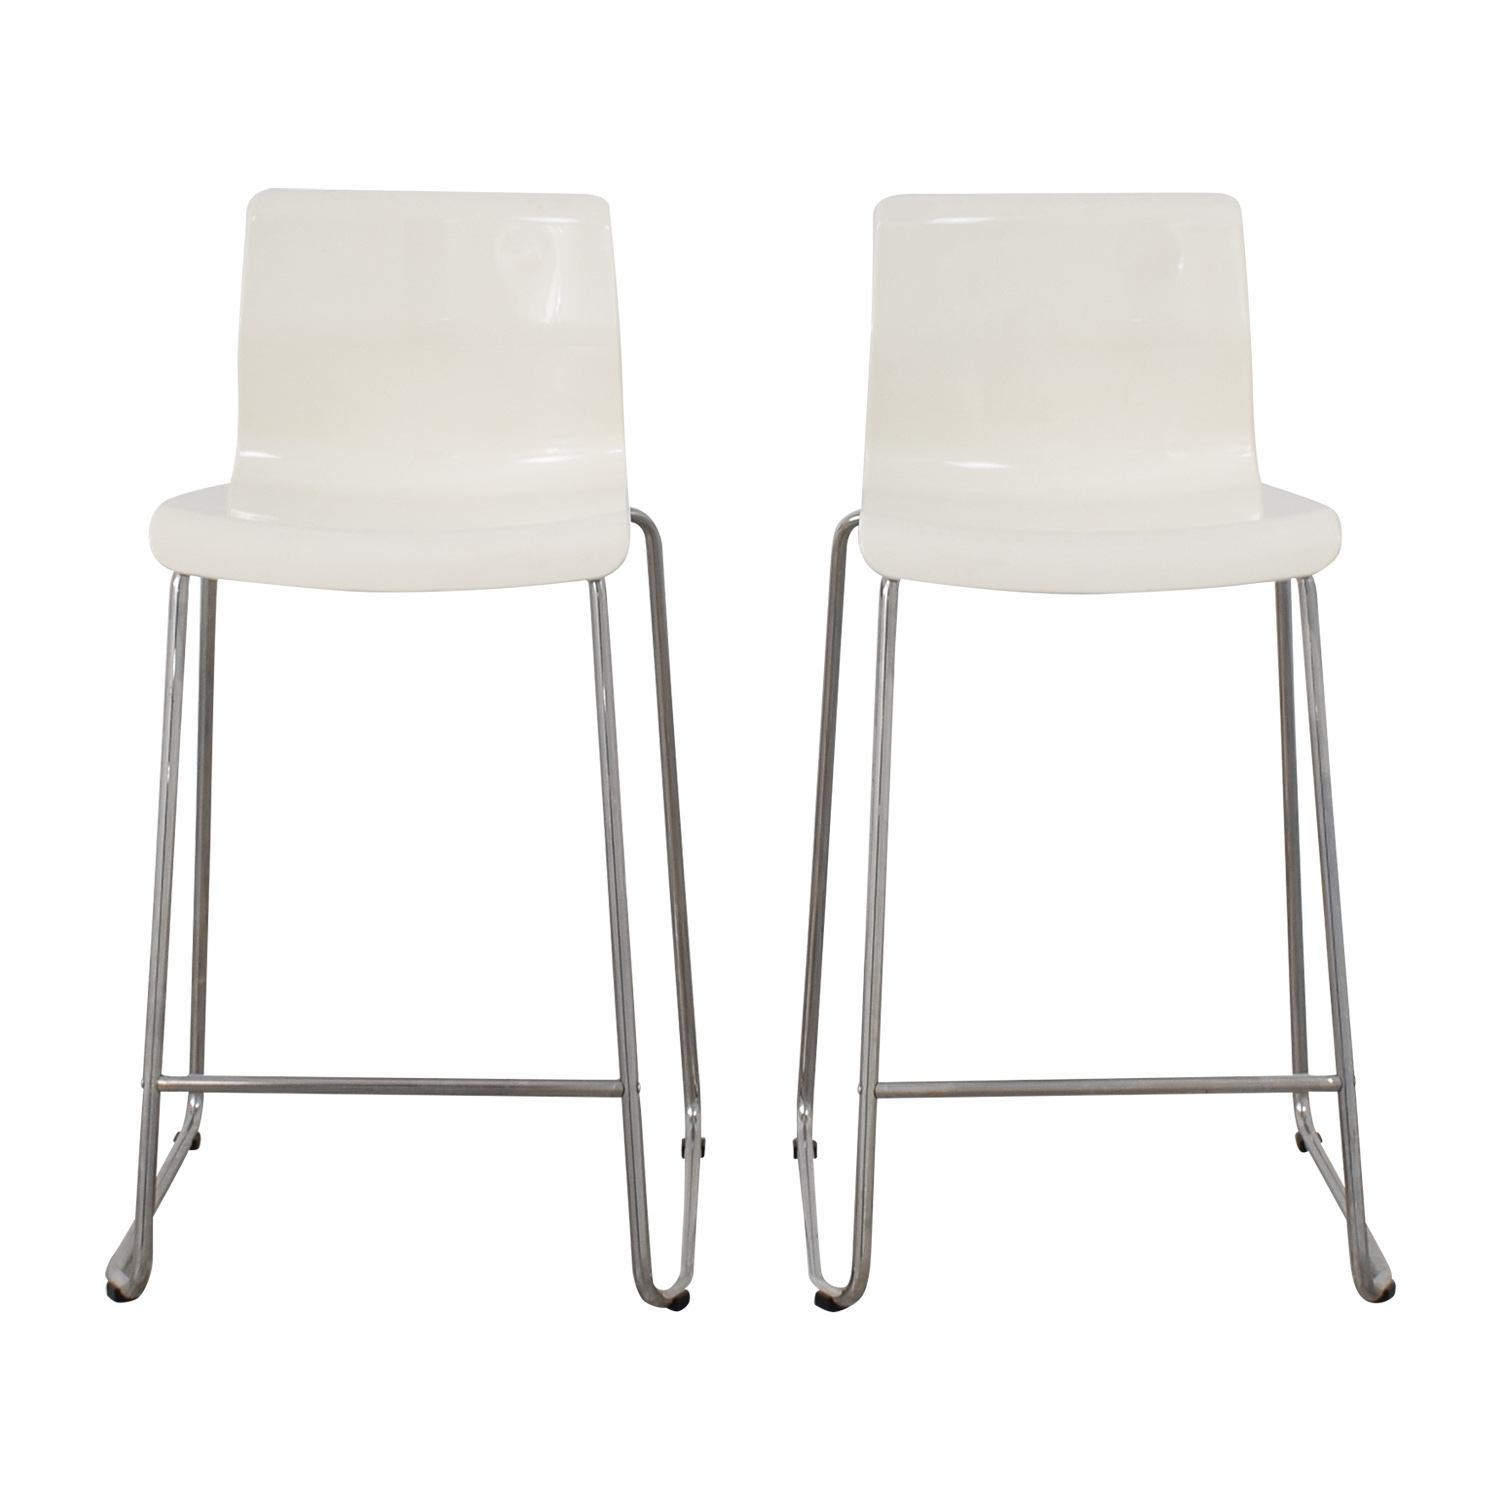 white bar stools ikea 85% OFF   IKEA IKEA White Glen Bar Stools / Chairs white bar stools ikea